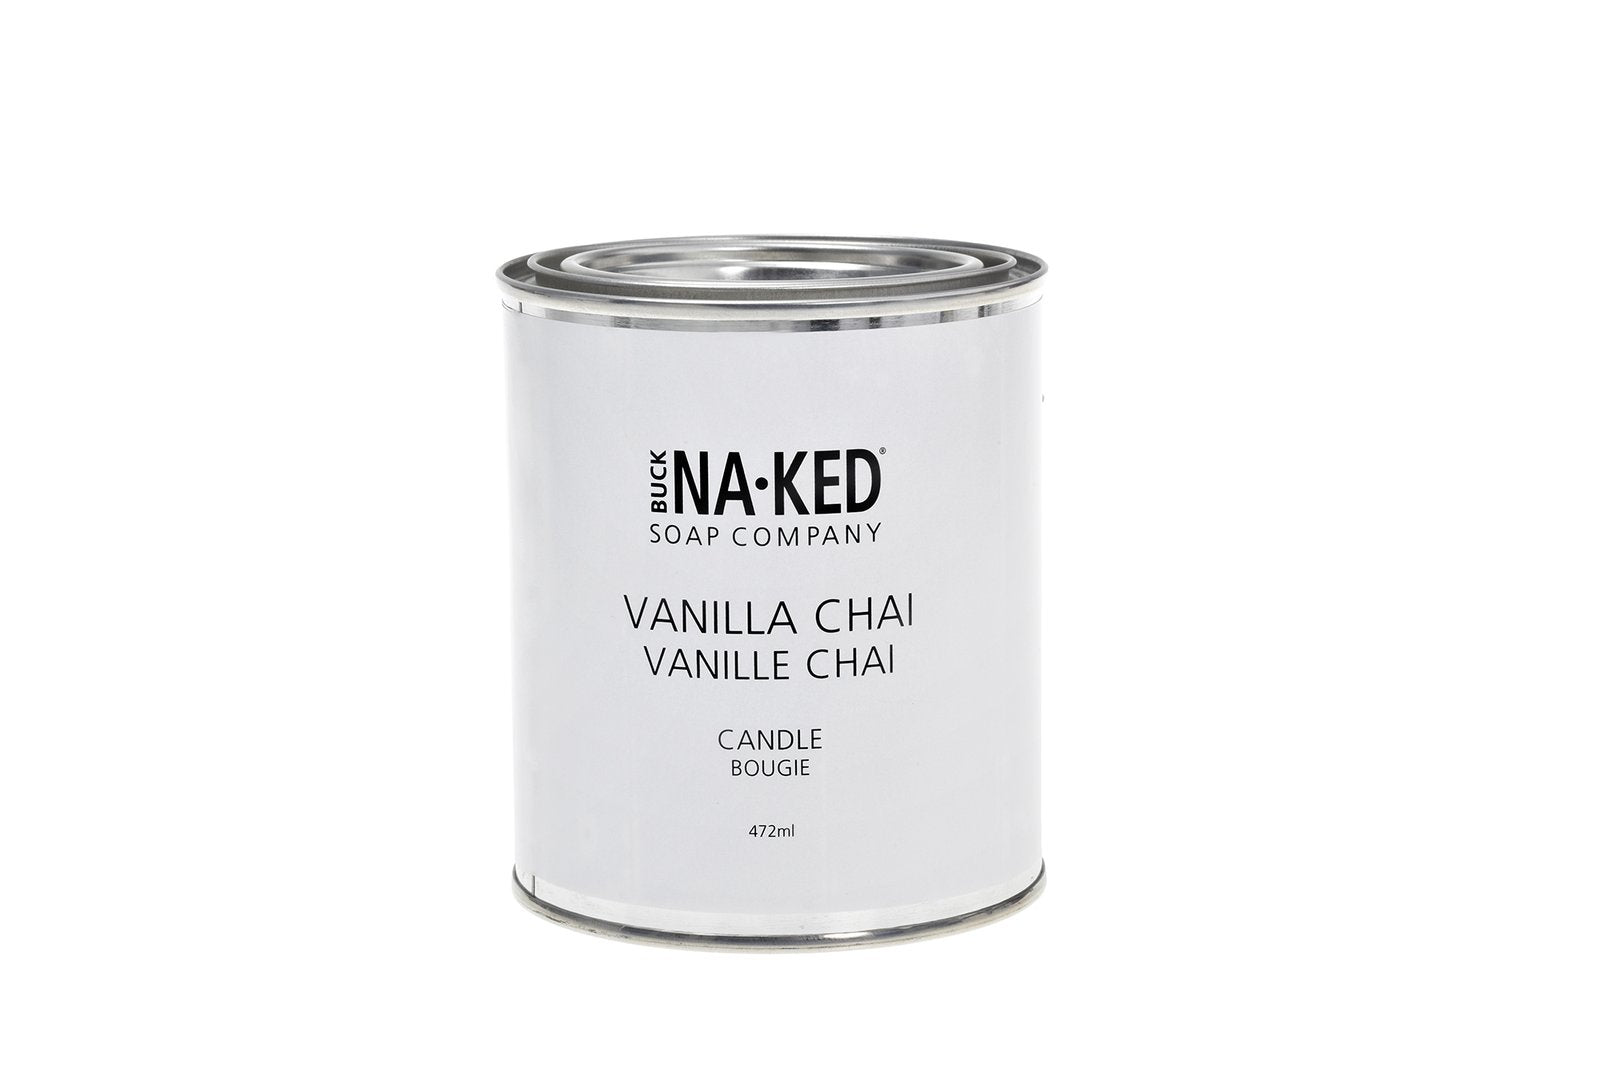 Vanilla Chai Candle 472ml/16oz